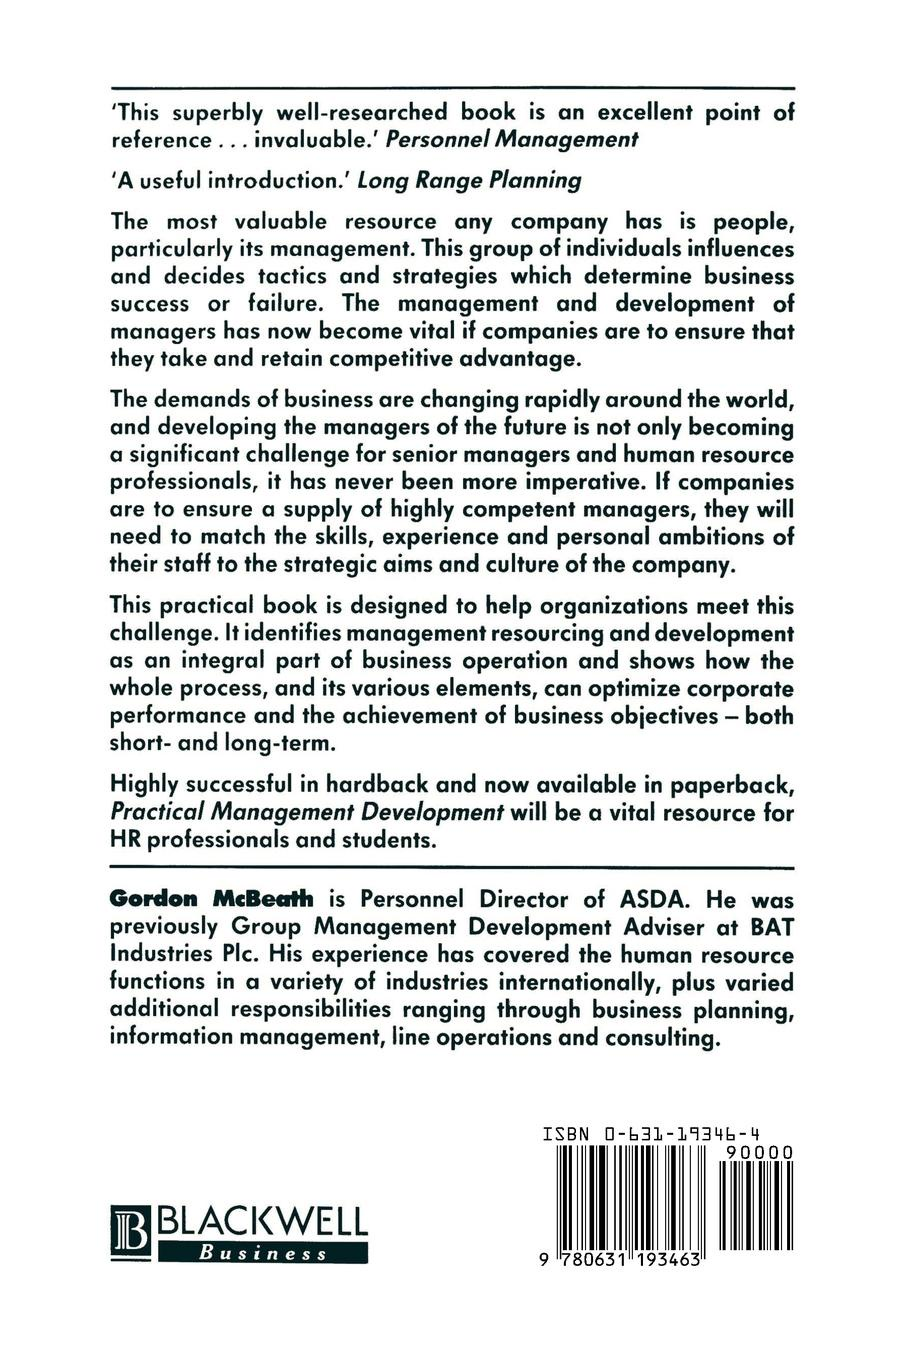 Gordon McBeath Practical Management Development. Strategy for Management Resources and Development in the 1990s corporate cash management strategy and practice